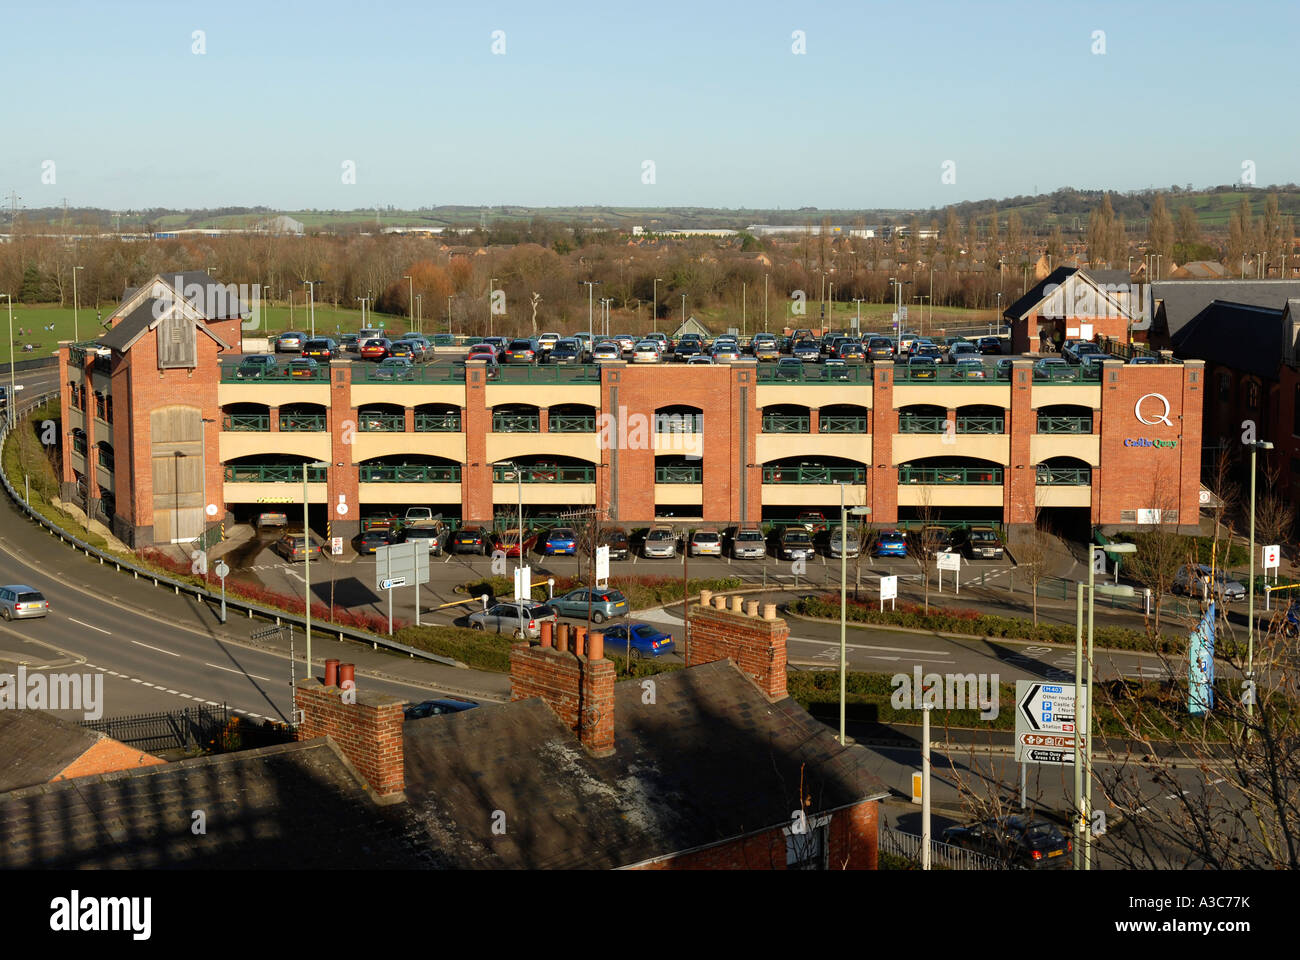 The Castle Quay shopping centre and car park in Banbury Oxfordshire England - Stock Image